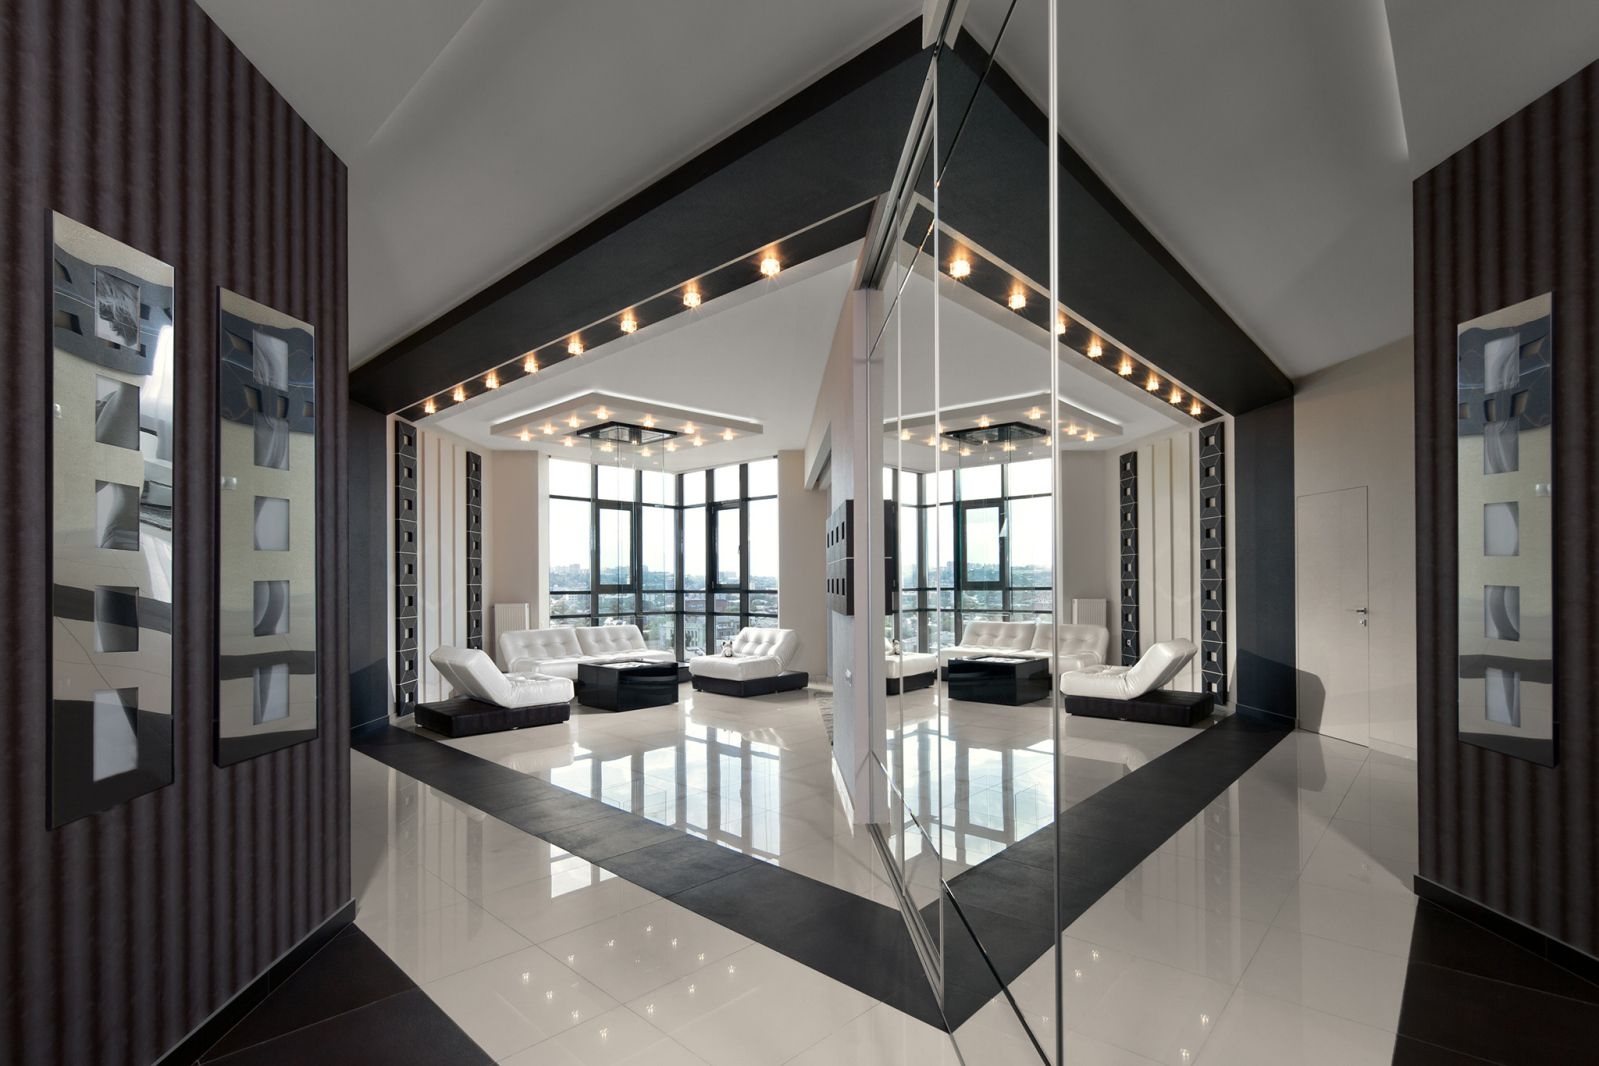 Interior Design Styles Combination in Modern Ukrainian Apartment. Unusual hallway into the living room with mirror wall